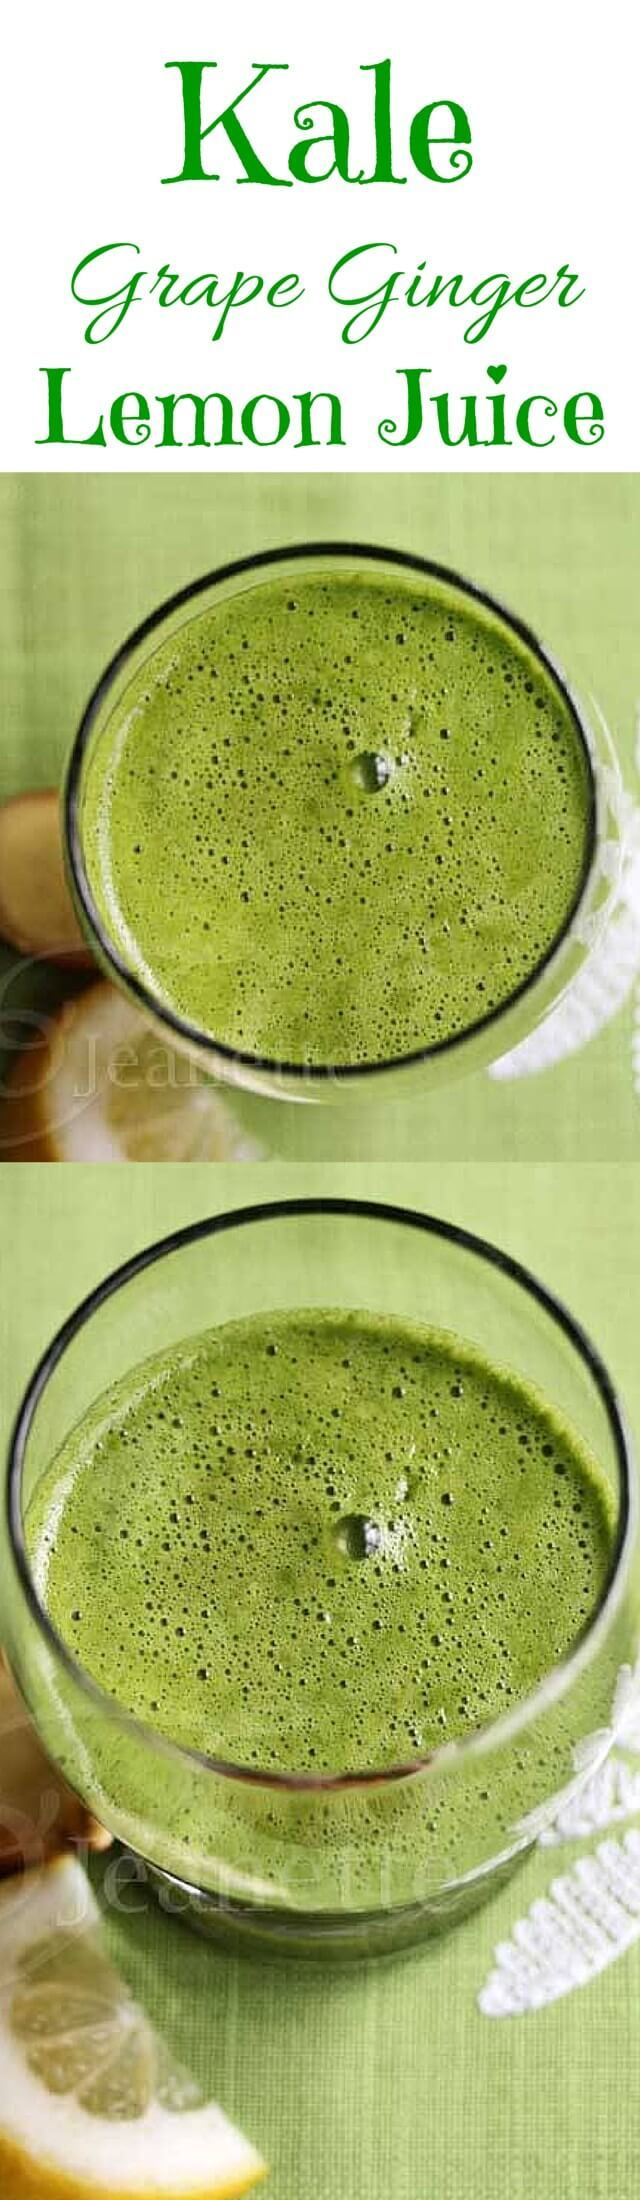 Kale Grape Ginger Lemon Juice - detox your body with this delicious green juice ~ http://jeanetteshealthyliving.com